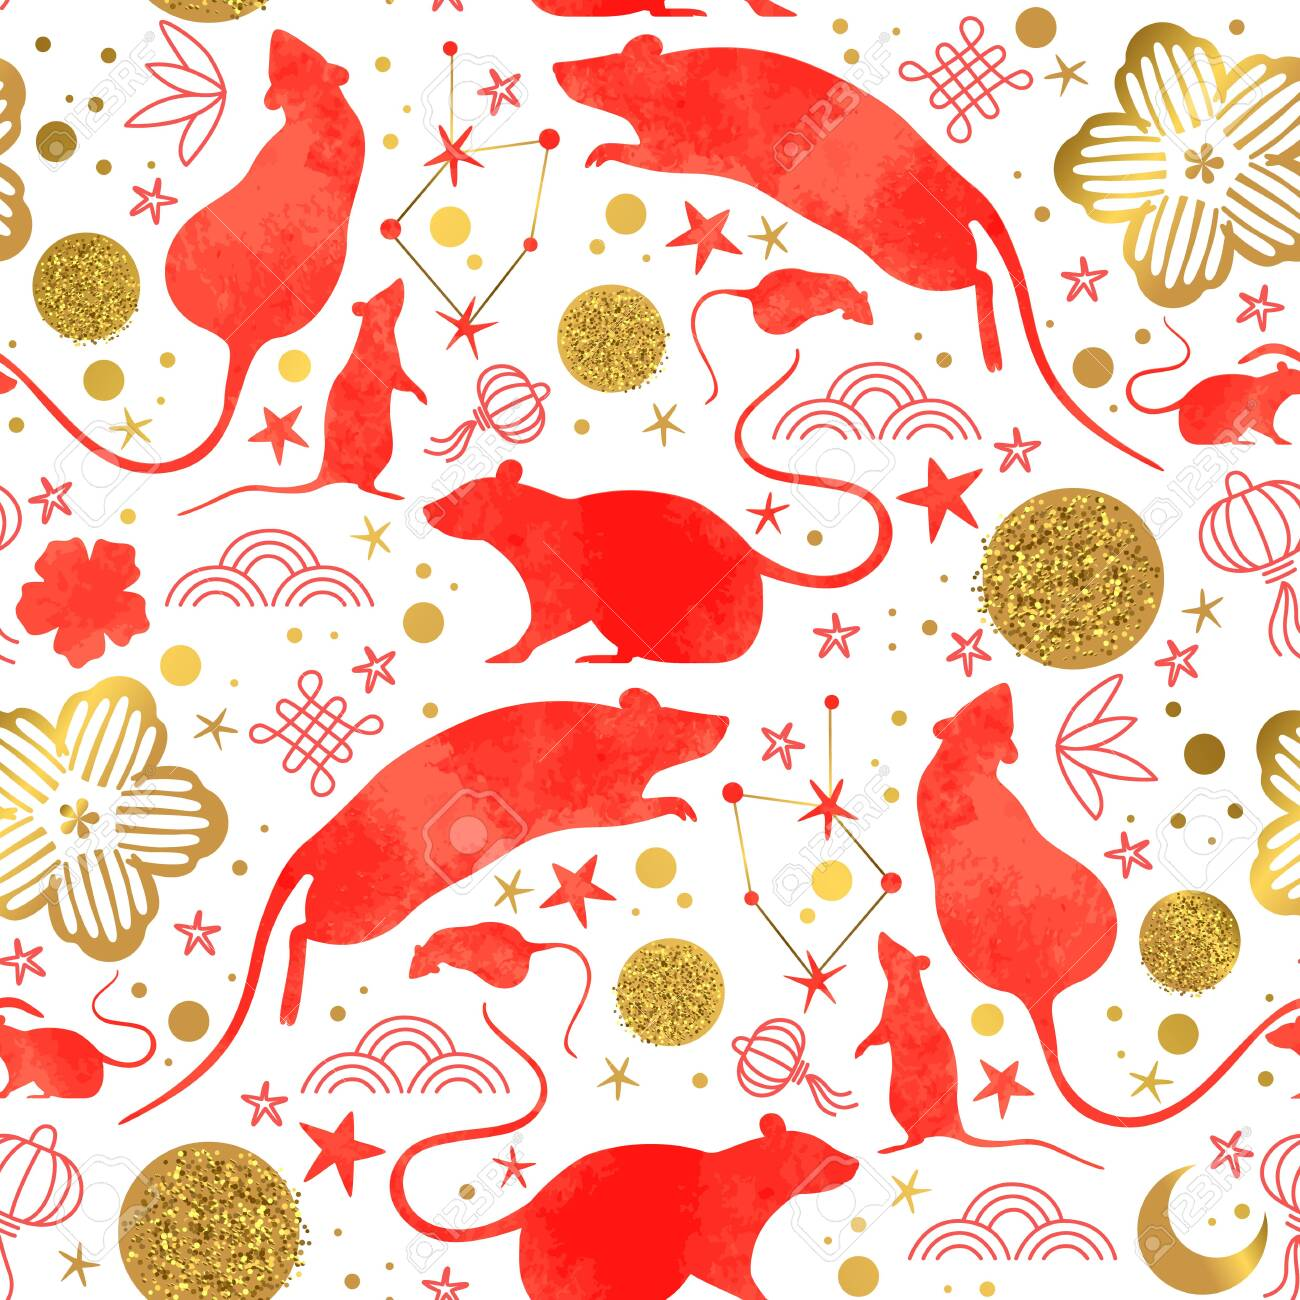 Chinese New Year of the rat seamless pattern with red watercolor mouse animals, gold asian culture icons and hand drawn doodles. Traditional lunar festival holiday background. - 131514628